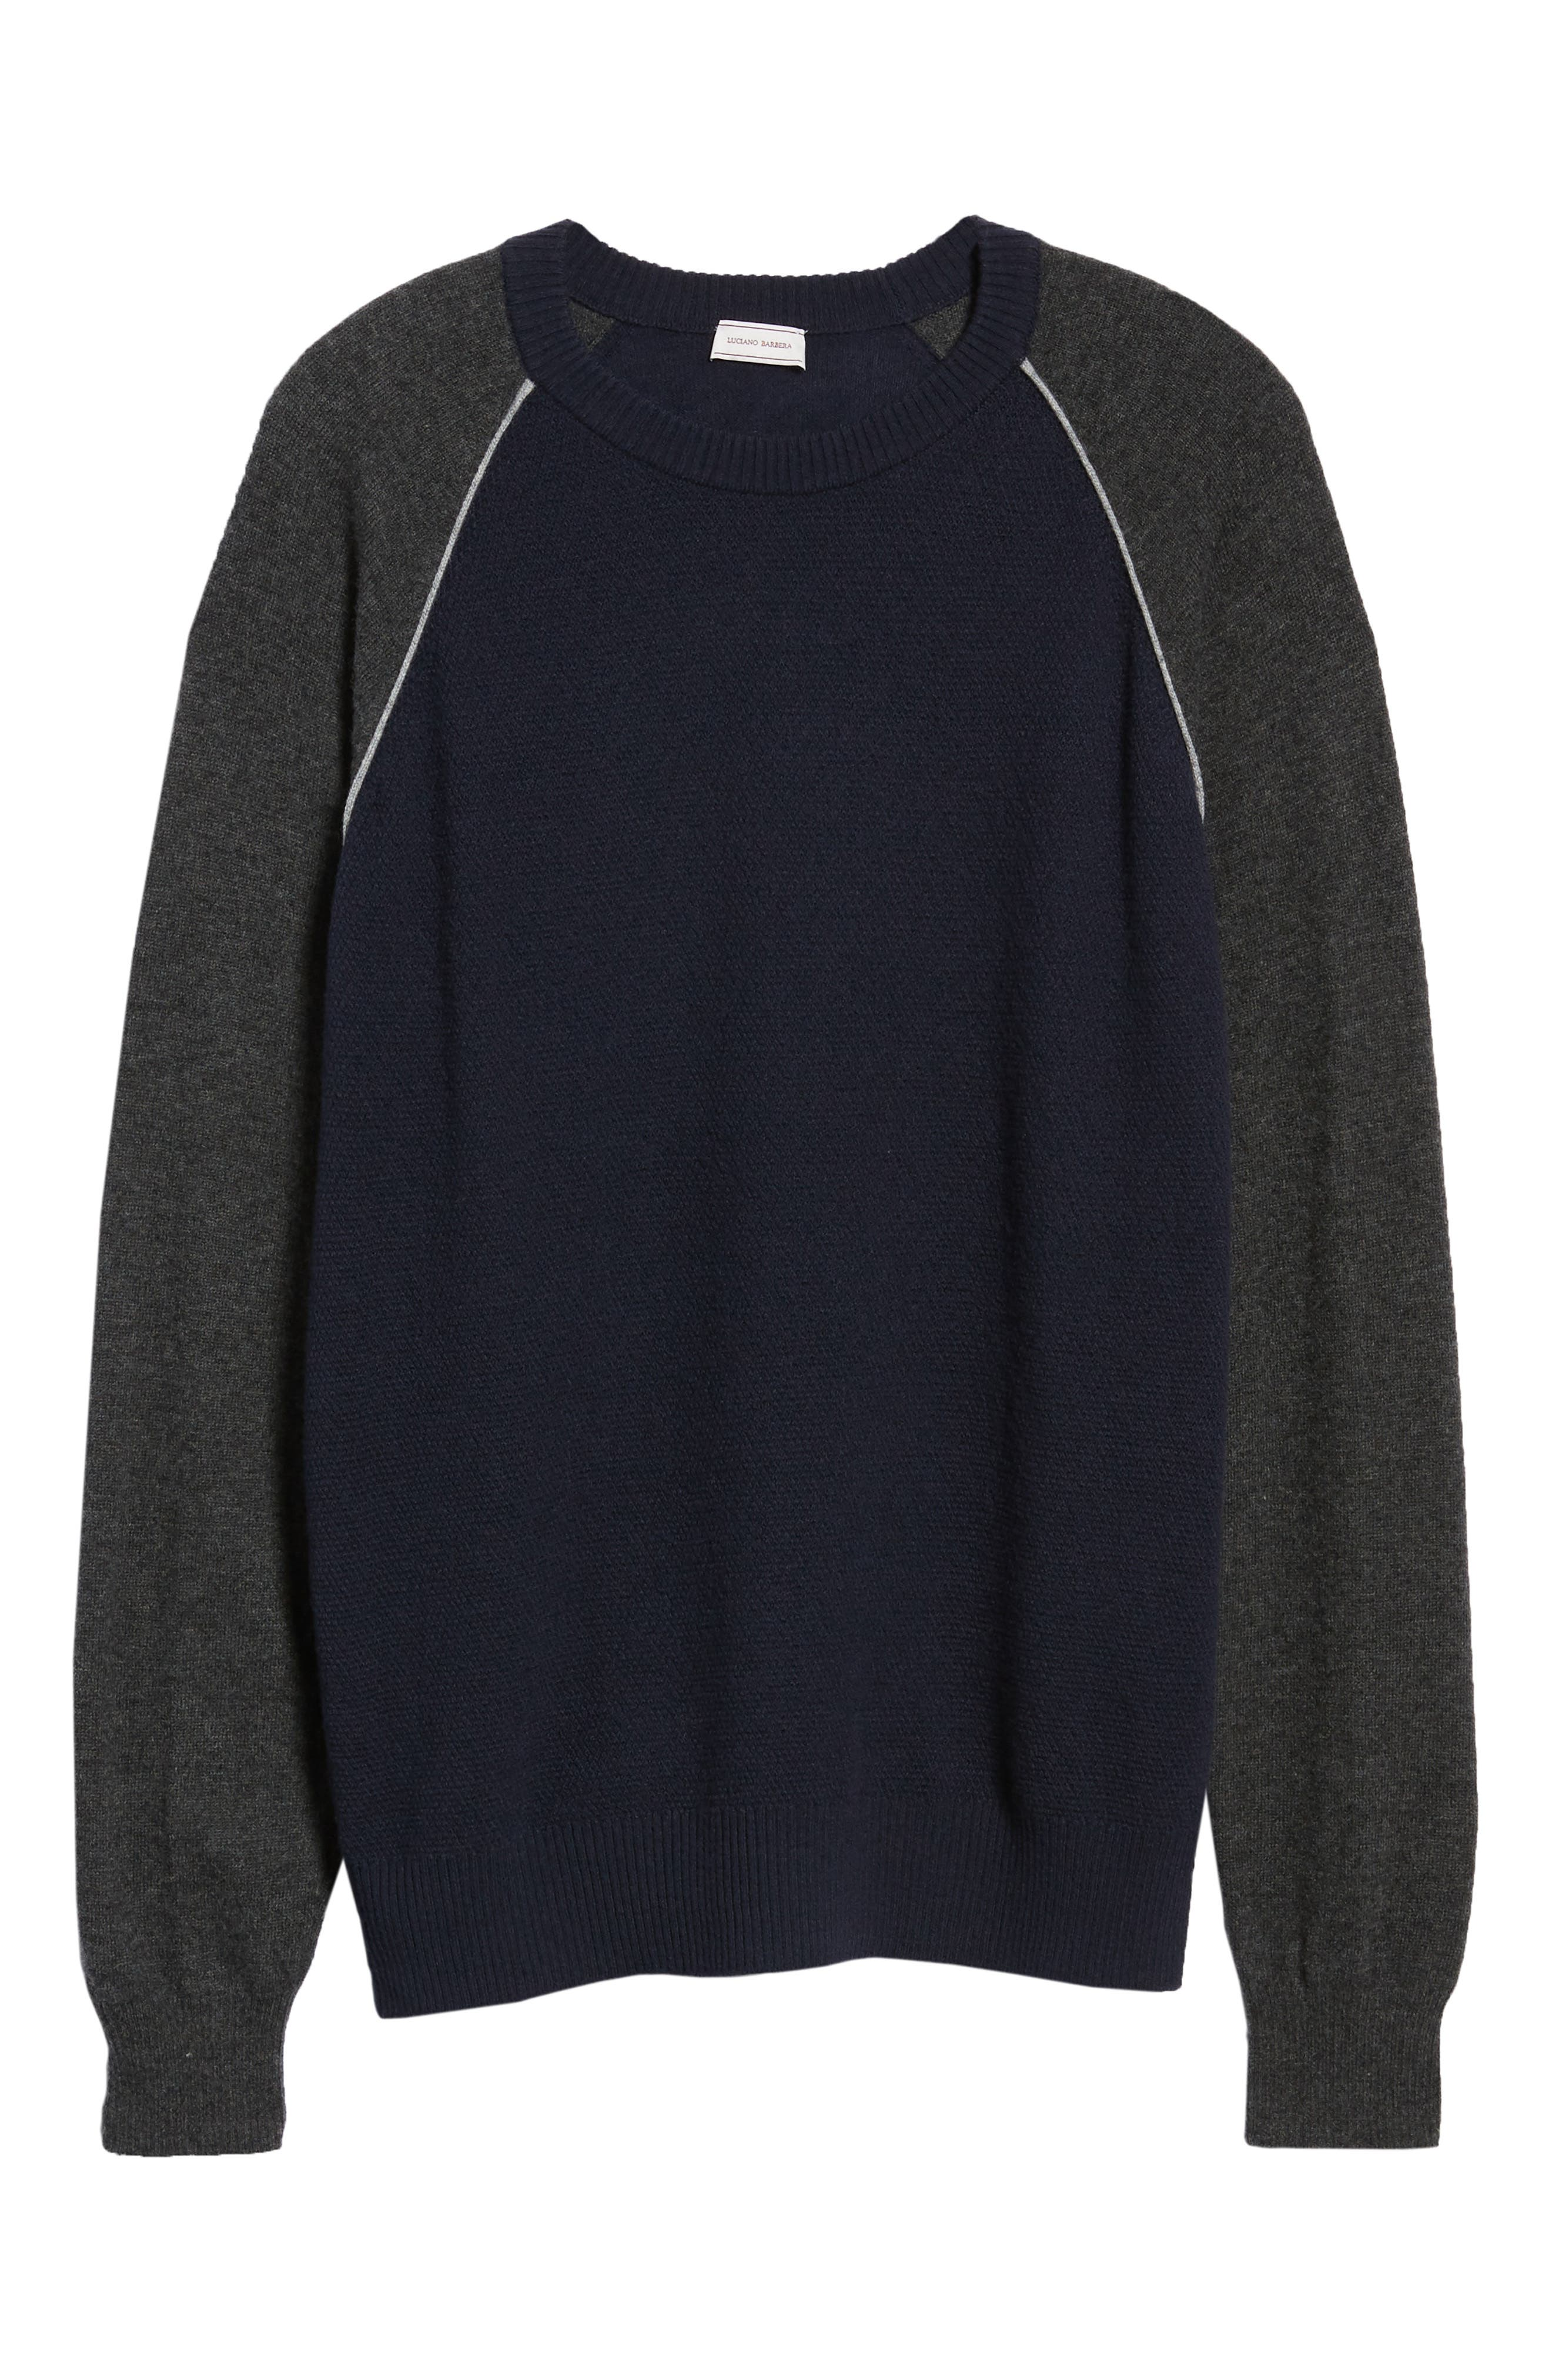 Active Crewneck Wool & Cashmere Sweater,                             Alternate thumbnail 6, color,                             NAVY